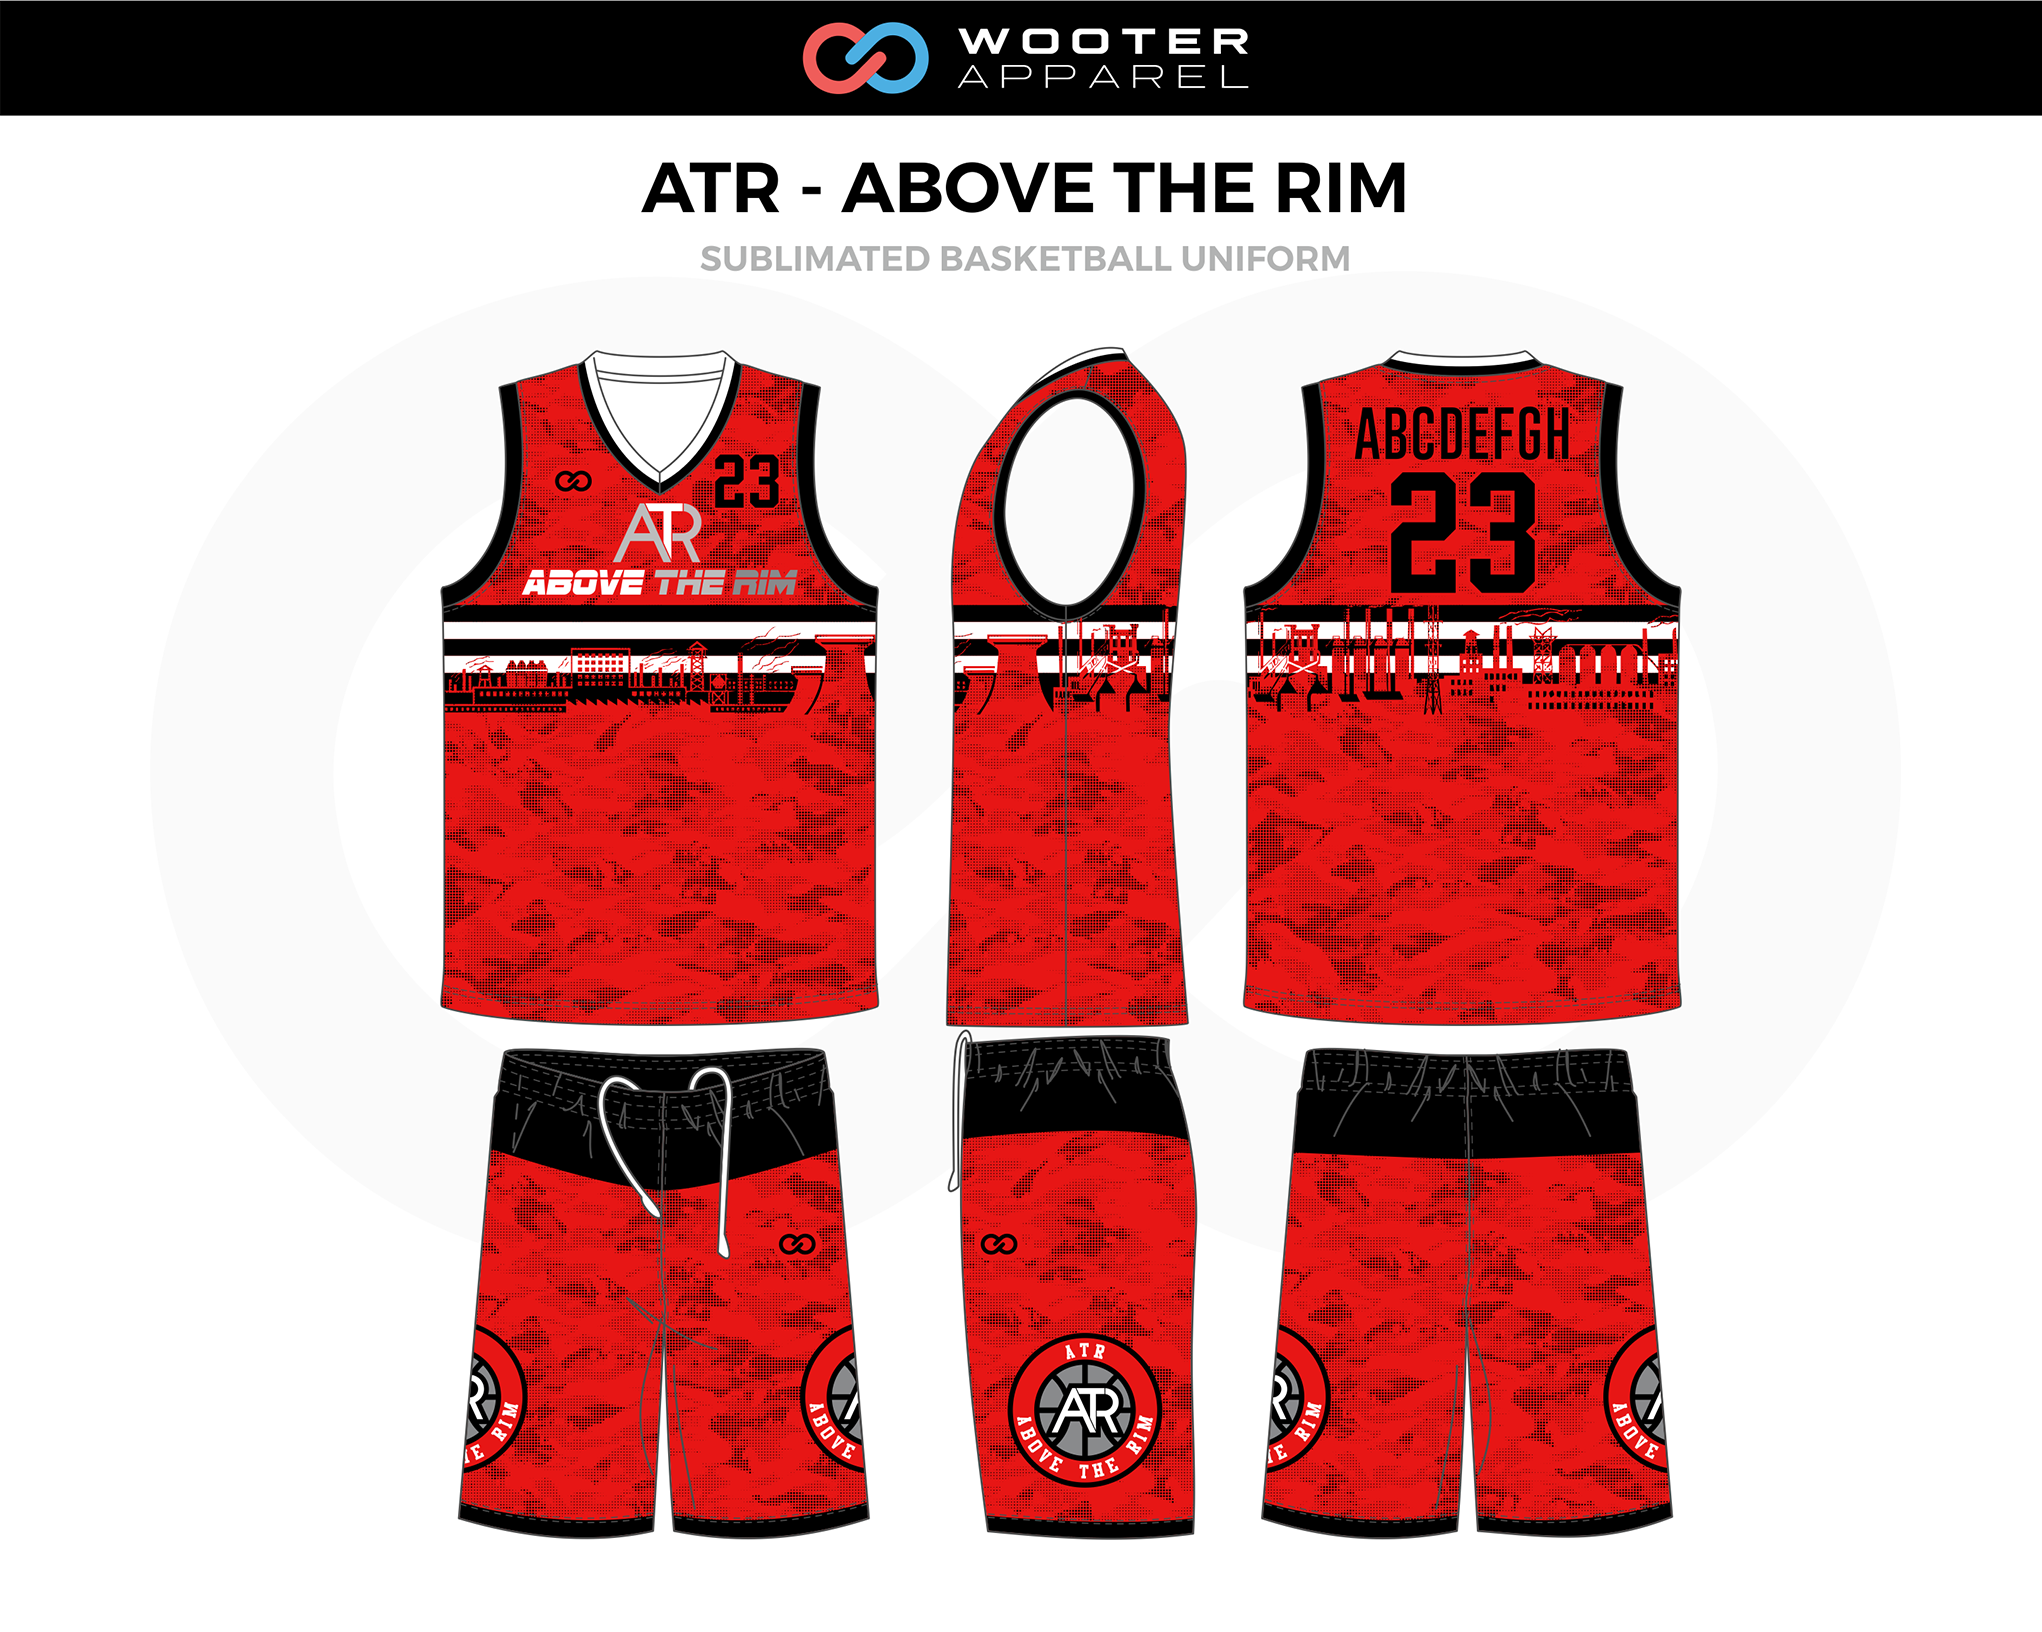 ATR- ABOVE THE RIM Red Black White Basketball Uniform, Jersey and Shorts